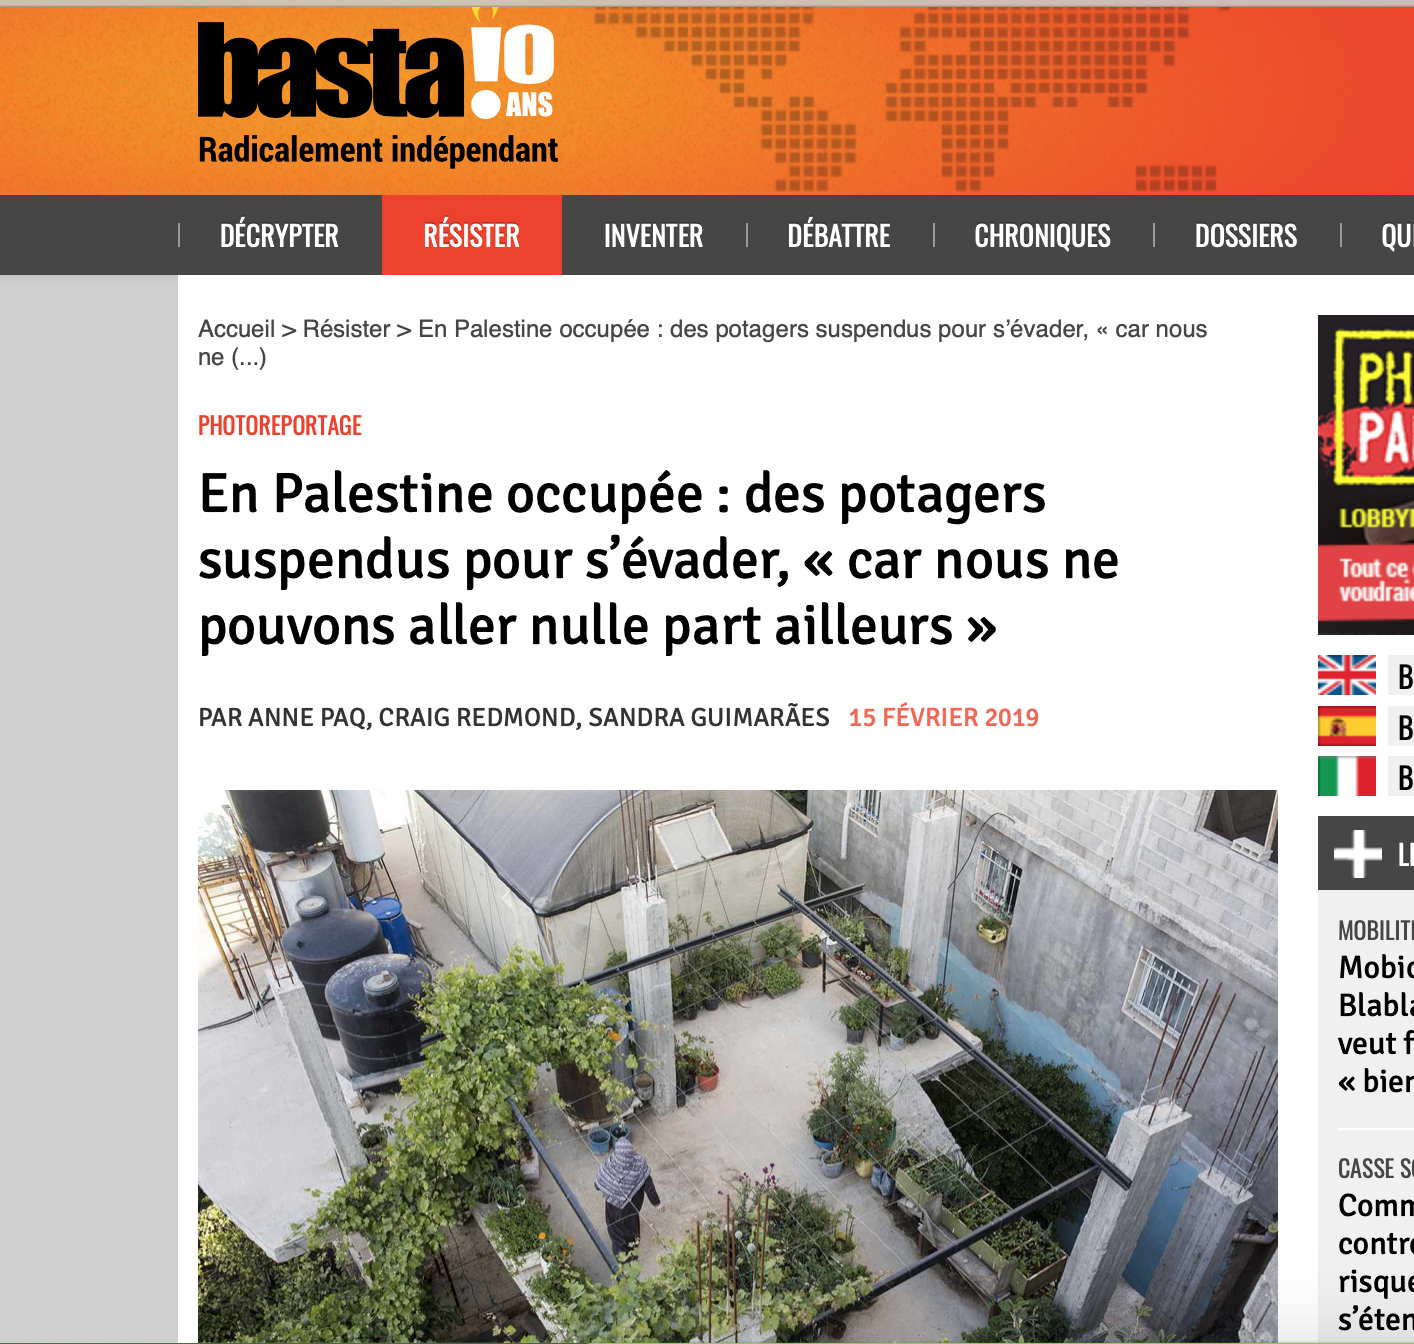 Baladi - Rooted Resistance article published in Basta! Magazine, February 2019